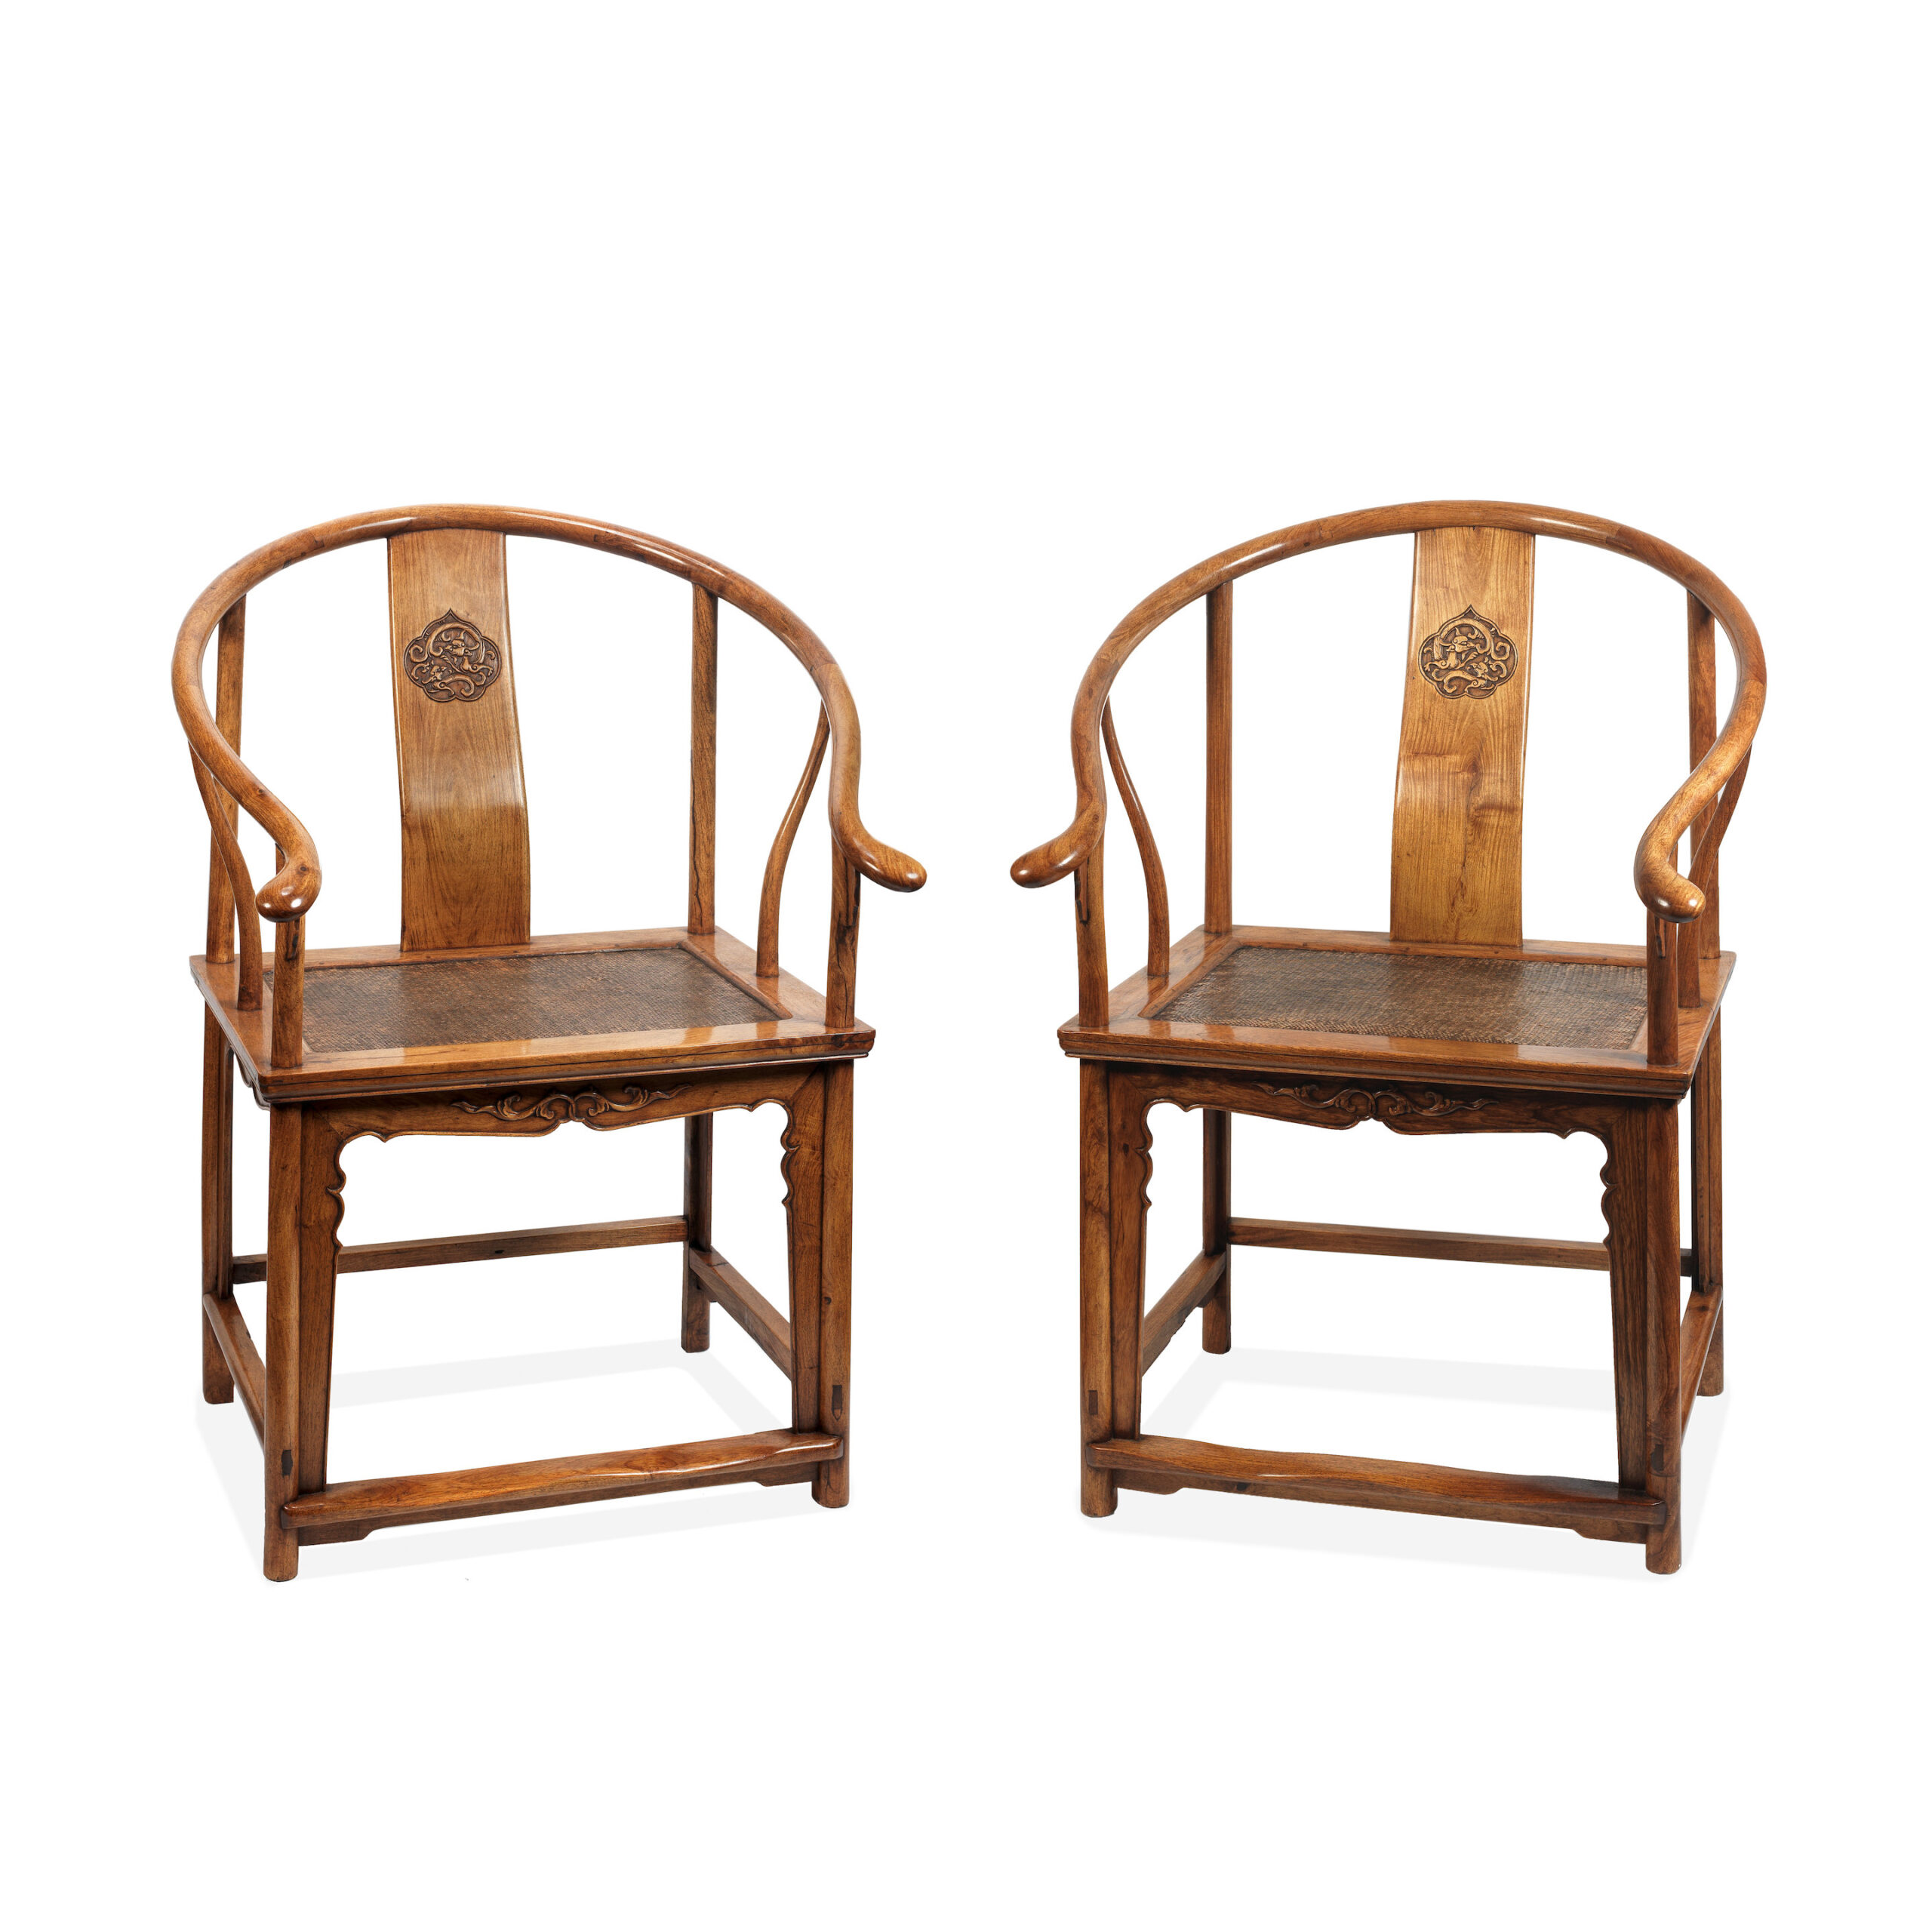 A PAIR OF HUANGHUALI HORSESHOE-BACK ARMCHAIRS, QUANYI | 101cm (40in) high x 61cm (24in) wide x 47cm (18 1/2in) deep | Provenance: A European private collection since circa 1980